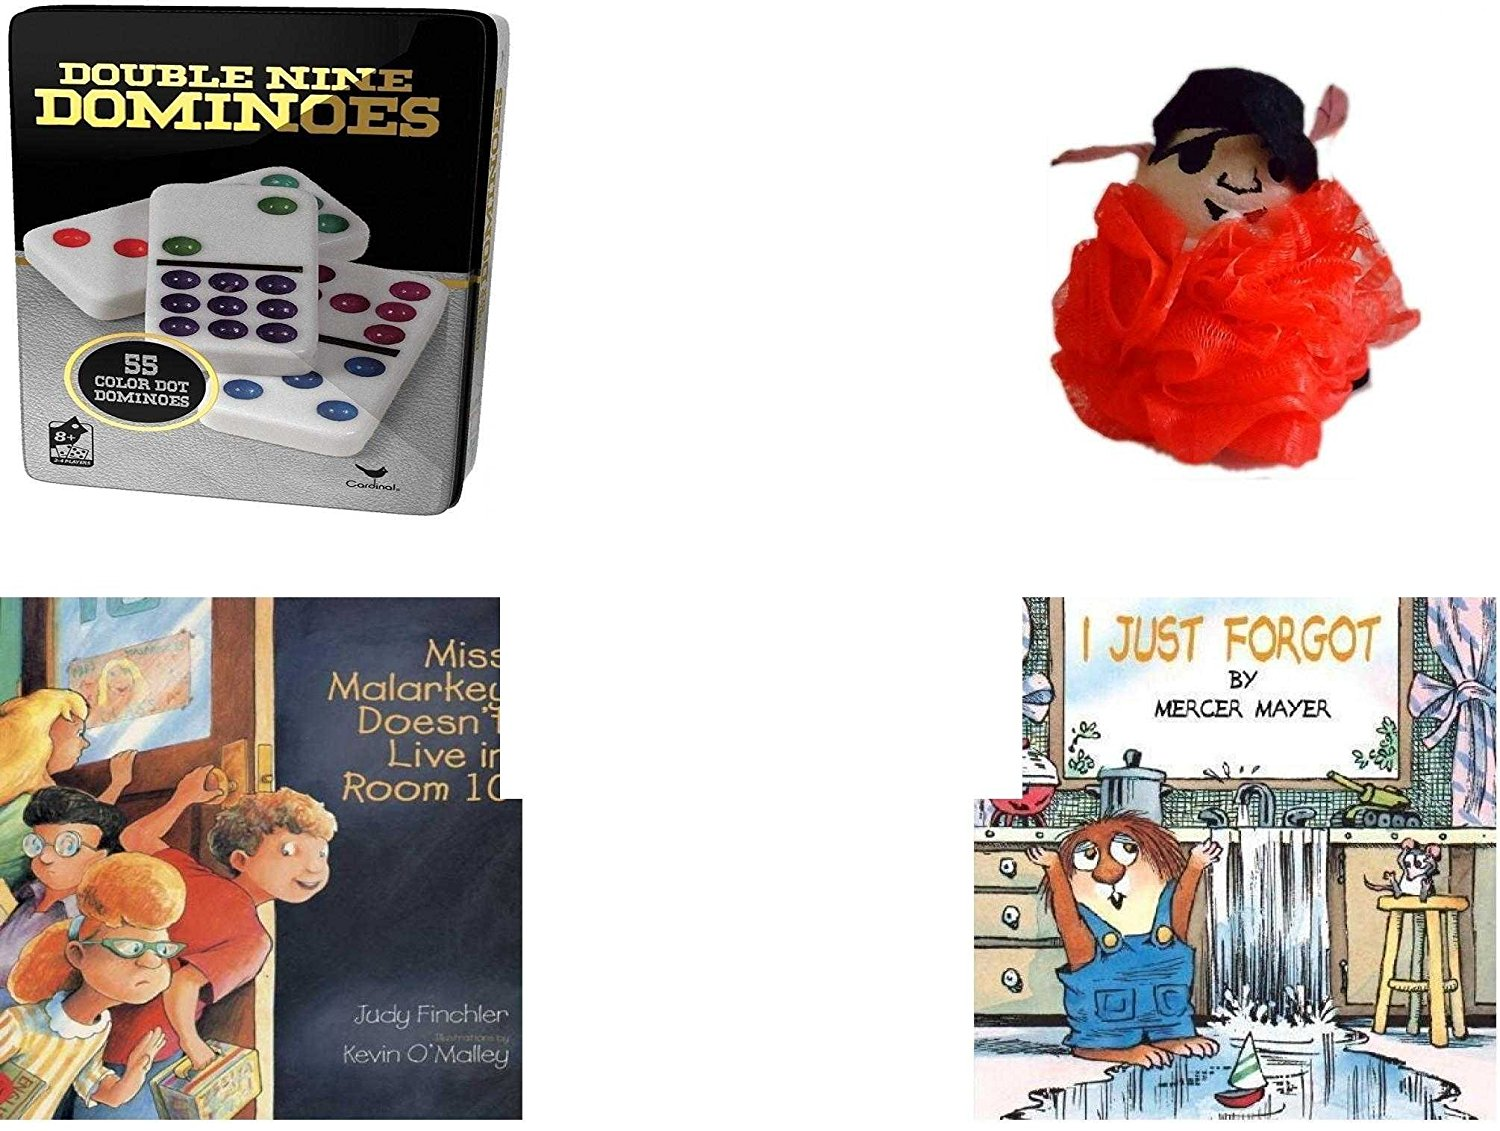 Children's Gift Bundle - Ages 3-5 [5 Piece] - Double 9 Color Dot Dominoes Game - The Wiggles Captain Feathersword Net Bath Sponge - Ty Beanie Baby - Beani the Gray Cat - Miss Malarkey Doesn't Live i